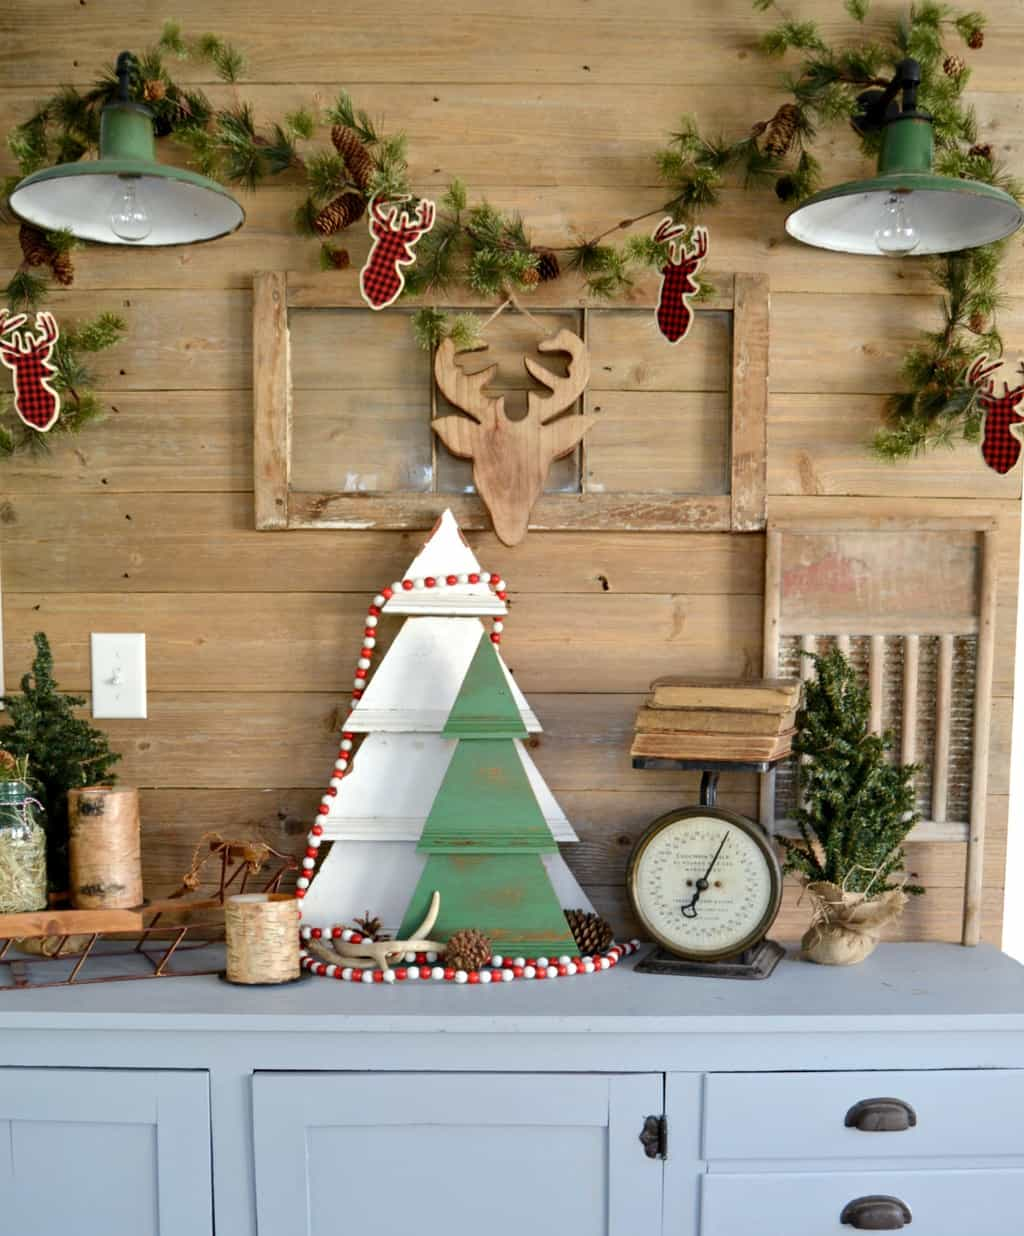 Outdoor Wall Christmas Decorations Diy Rustic Wall Christmas Tree To Add Character And Charm To